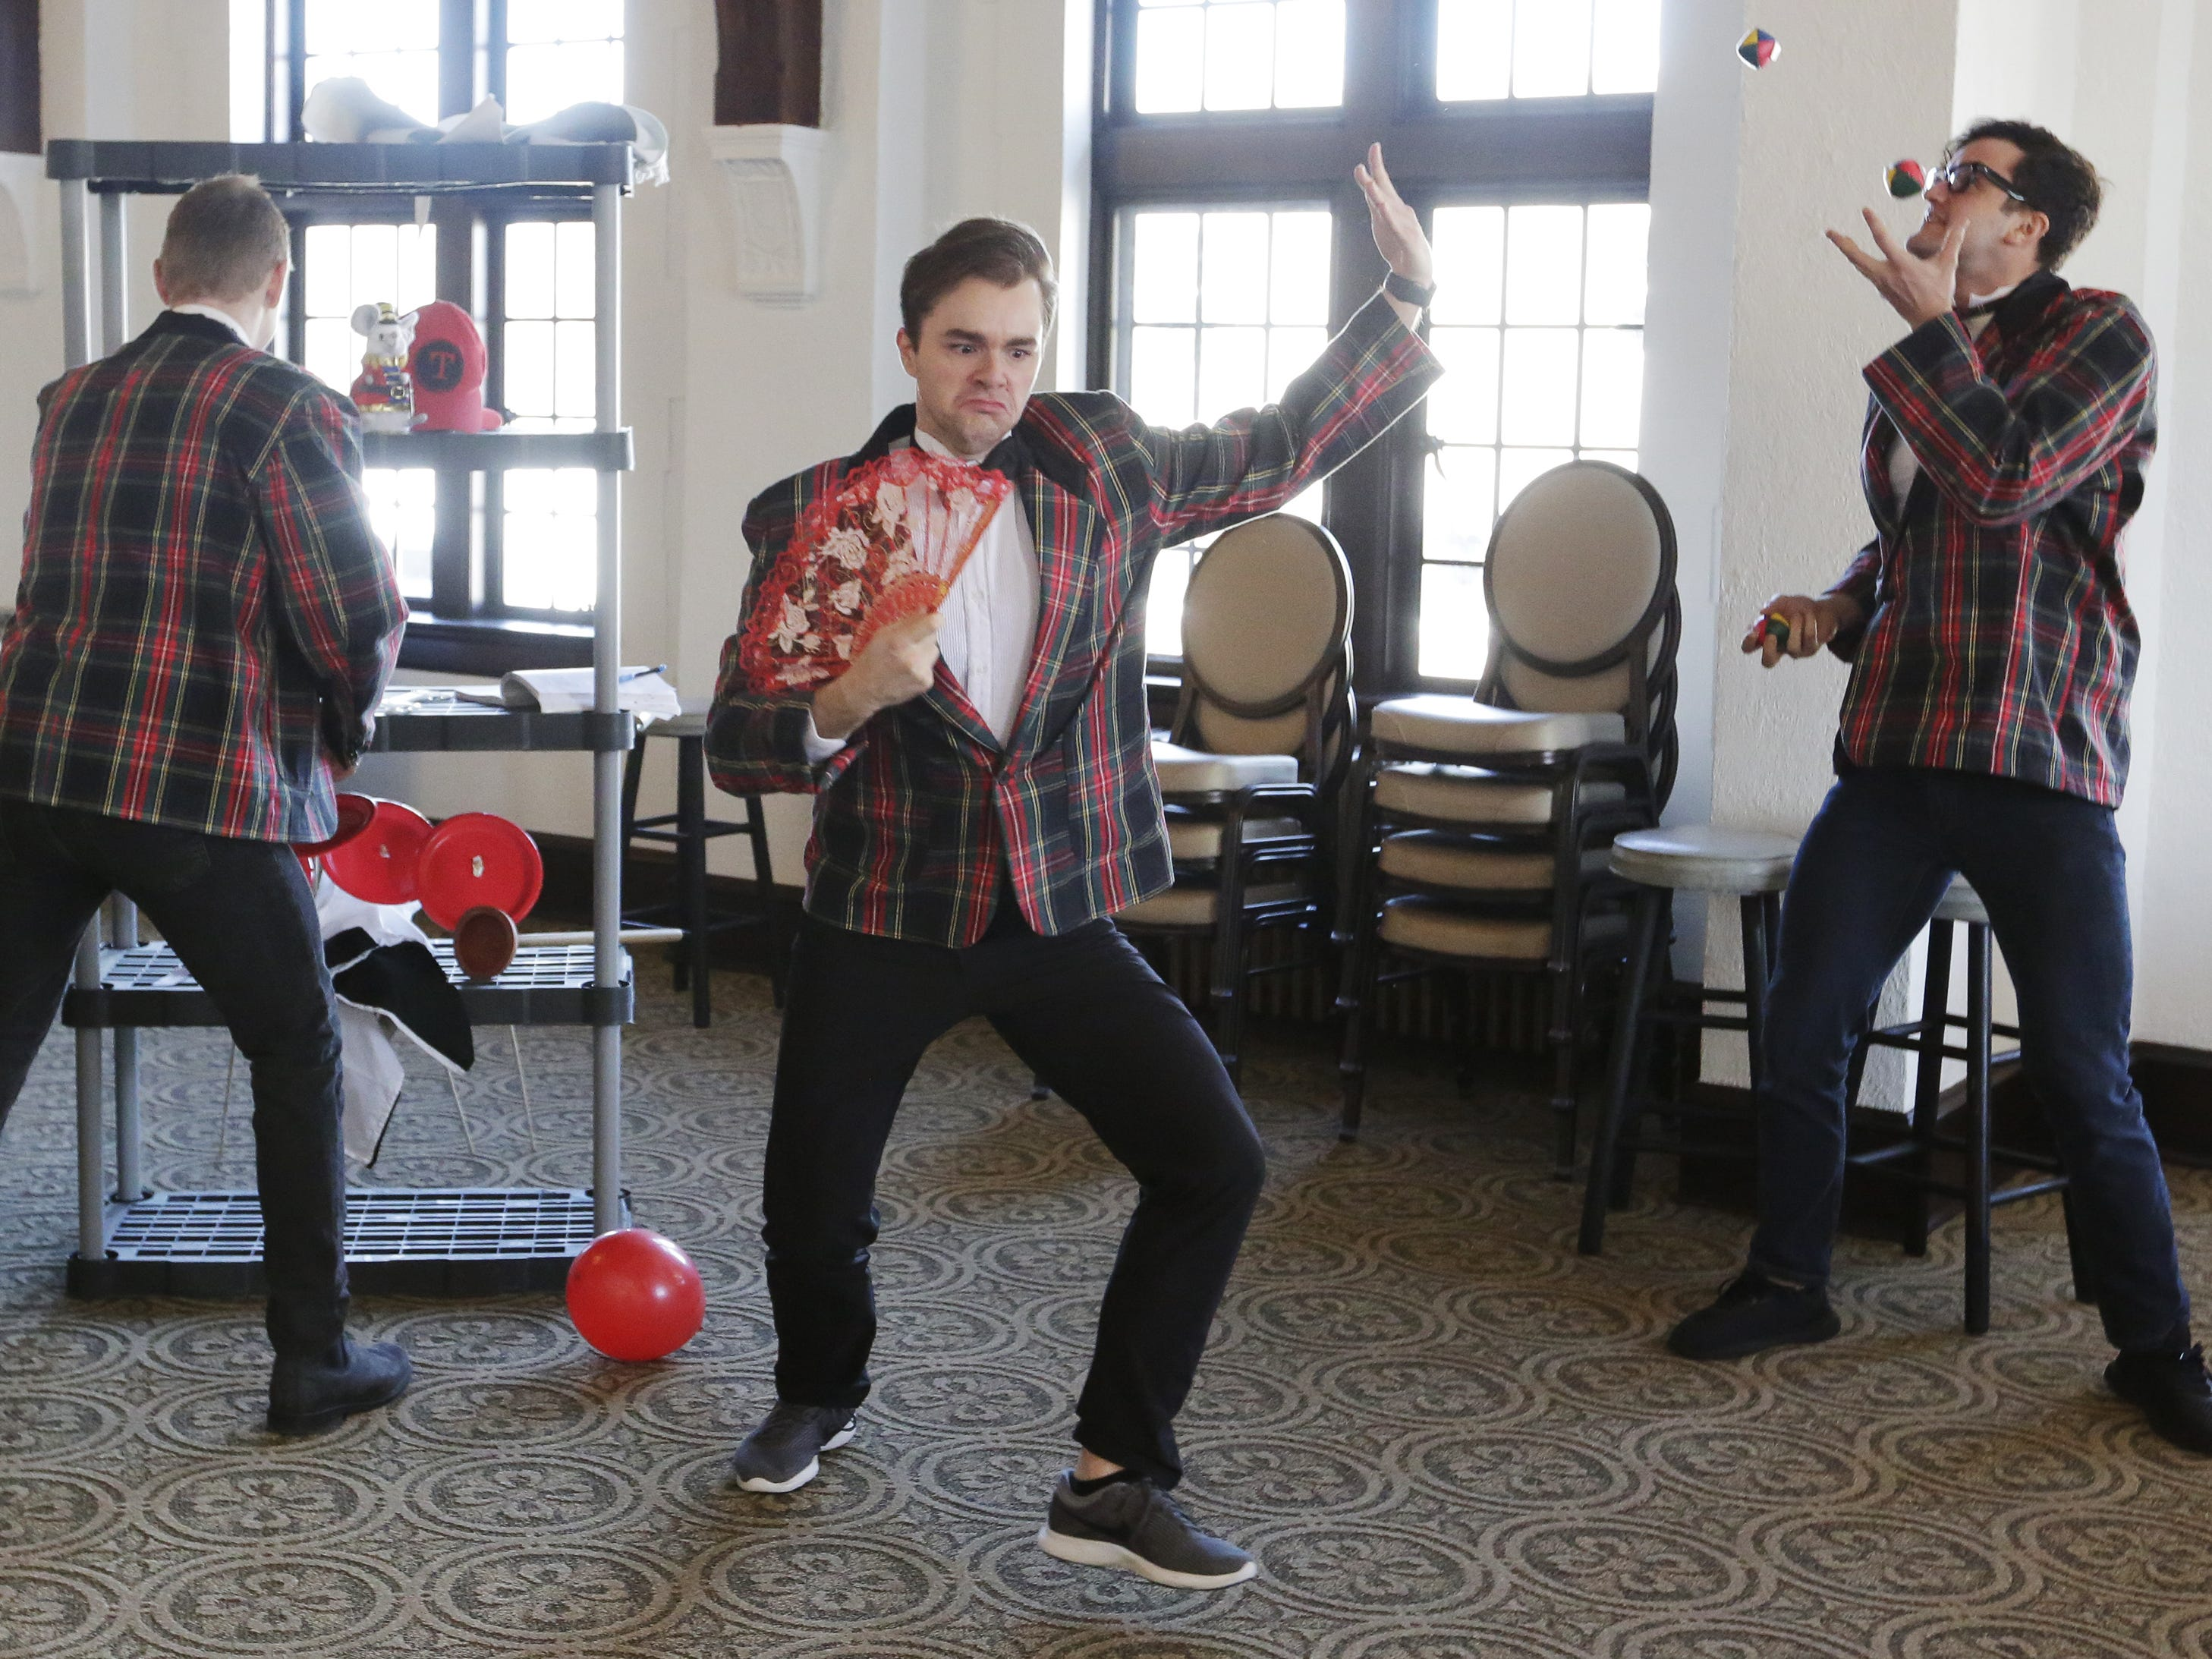 """Brian Krinsky, Bryce Dutton, and Carver Duncan rehearse Thursday, Dec. 6, 2018, for the dinner theater presentation """"Forever Plaid: Plaid Tidings,"""" which opens Dec. 13, 2018, at The Howard in Oshkosh."""